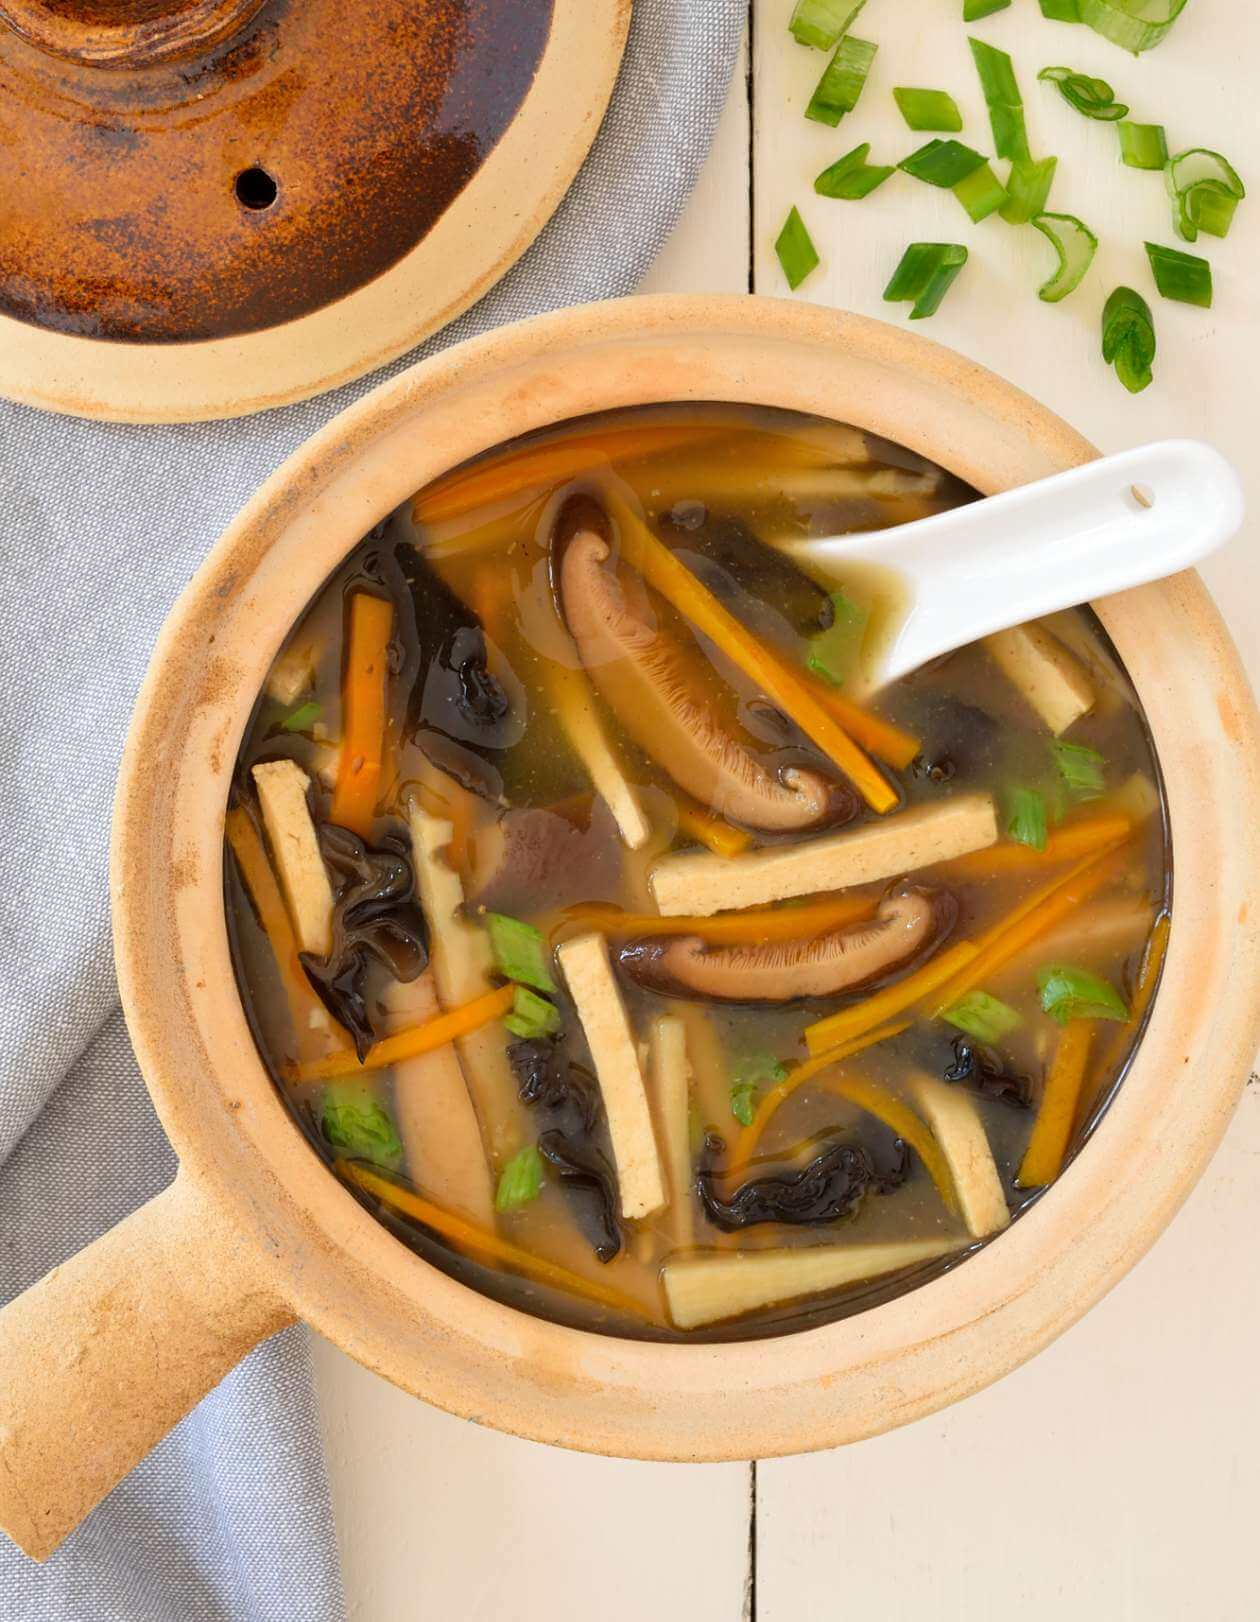 Vegan Hot and Sour Soup // Are you missing Chinese junk fast food during your clean eating diet? Then make this soup and watch the cravings disappear. | The Green Loot #vegan #cleaneating #weightloss